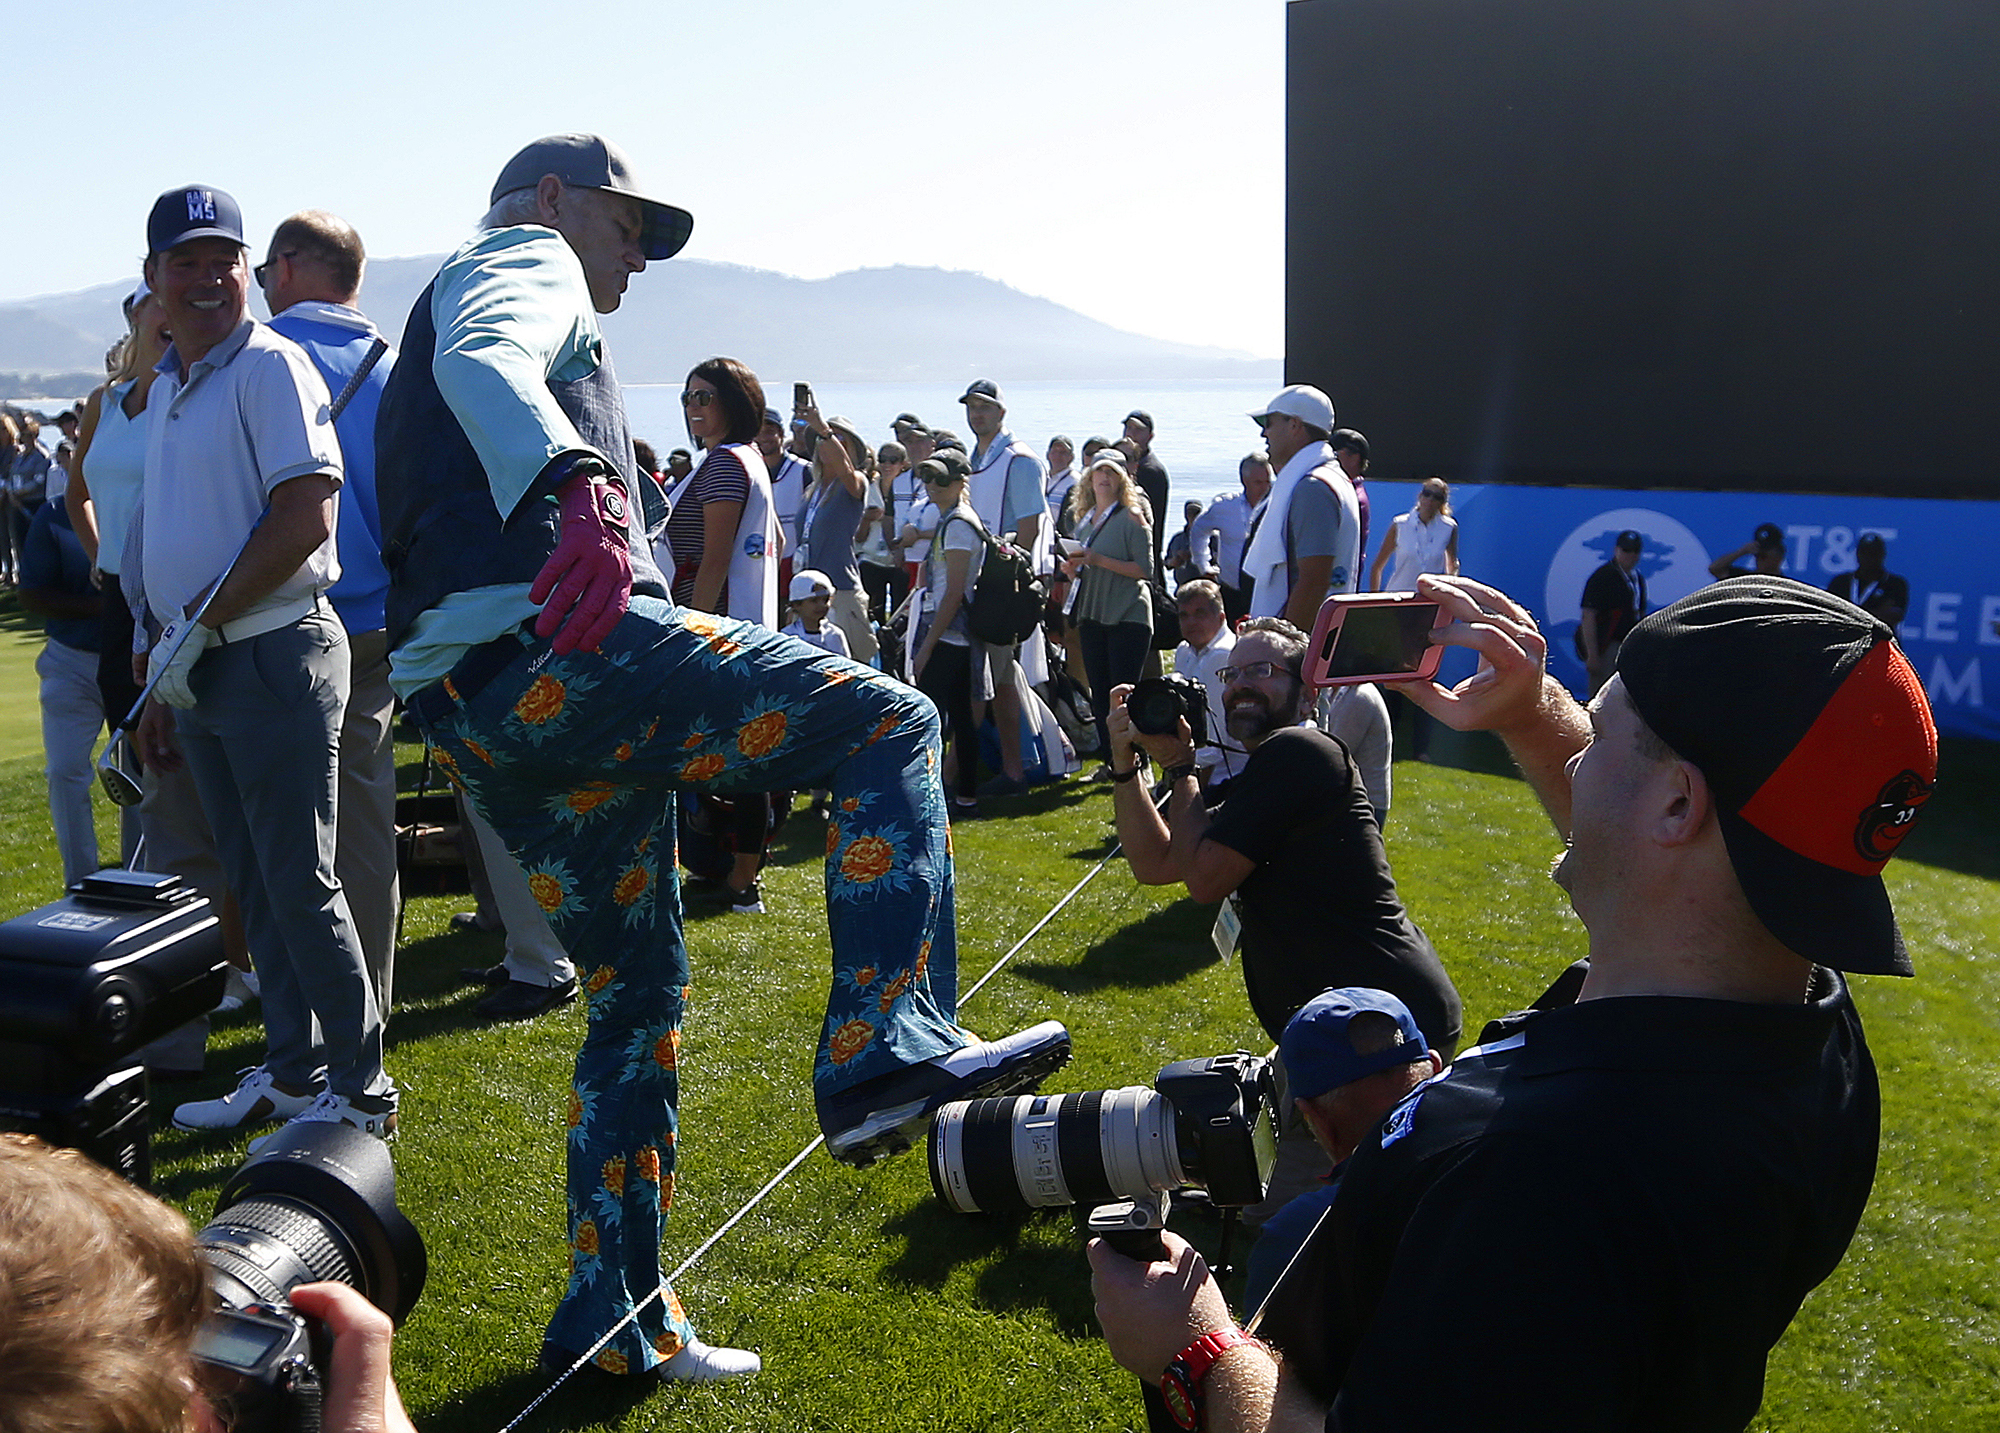 Kevin Streelman, Beau Hossler share first-round lead at Pebble Beach